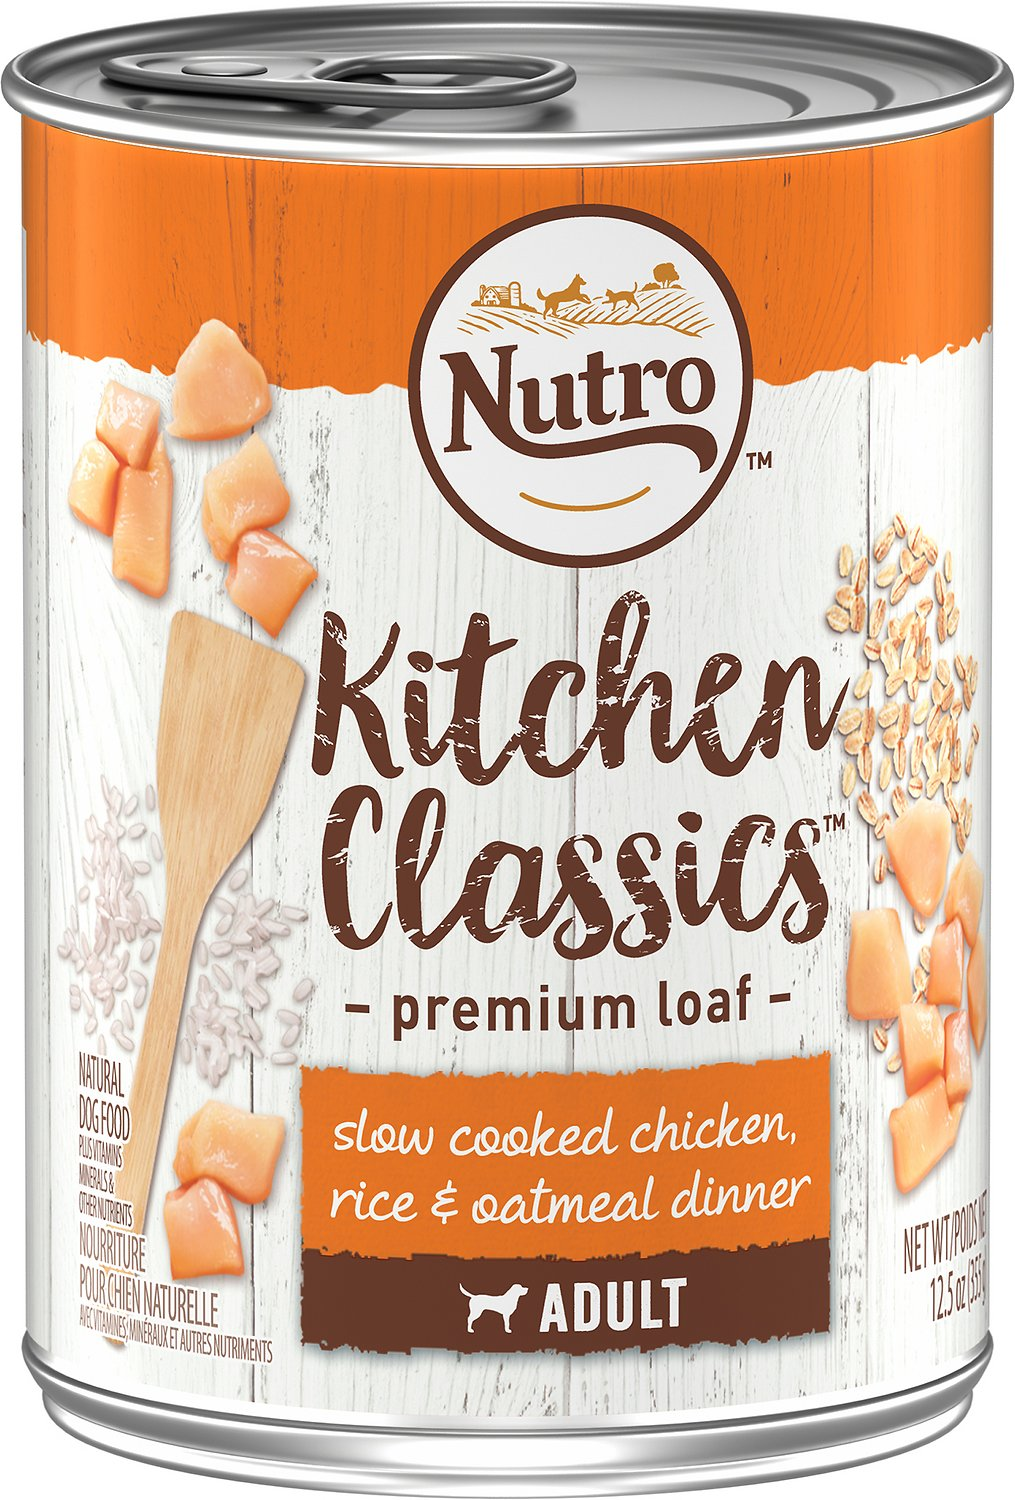 Nutro Adult Kitchen Classics Slow Cooked Chicken, Rice & Oatmeal Dinner Canned Dog Food, 12.5-oz